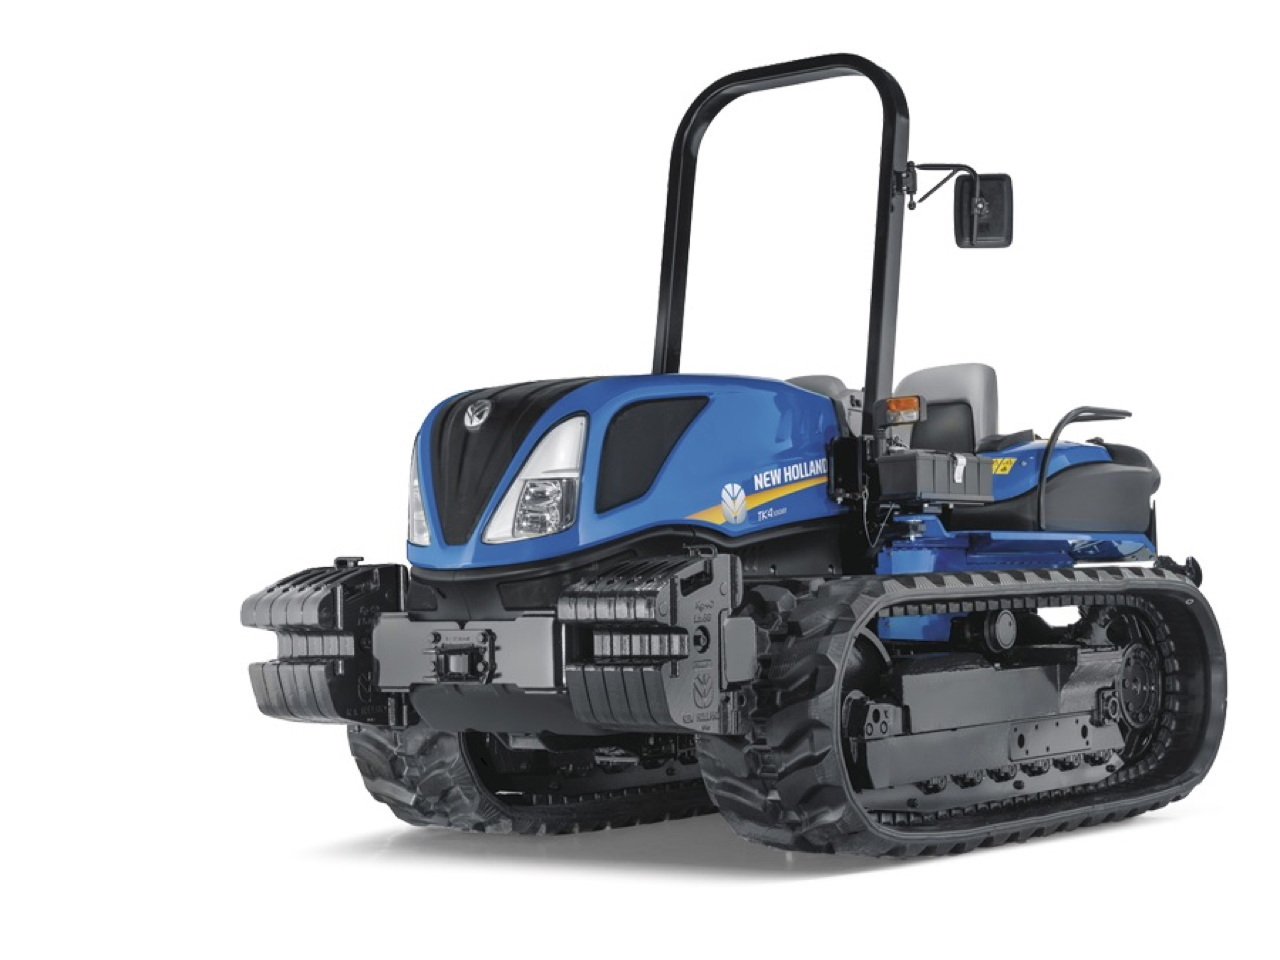 New Holland TK4 TK4.90F